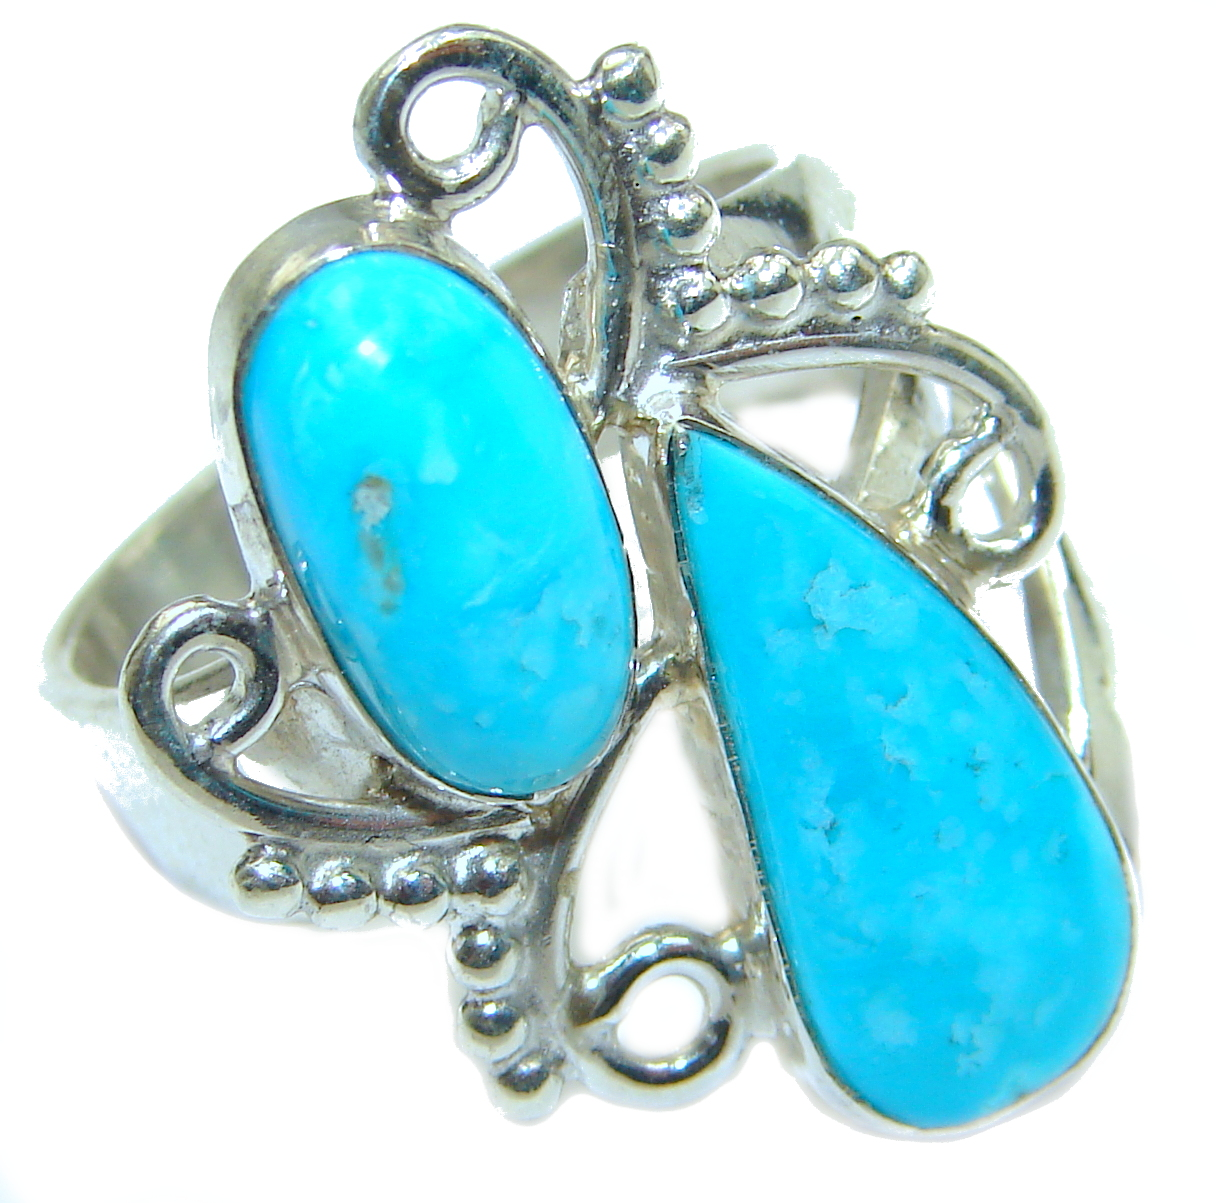 Genuine Sleeping Beauty Turquoise .925 Sterling Silver handcrafted Ring size 7